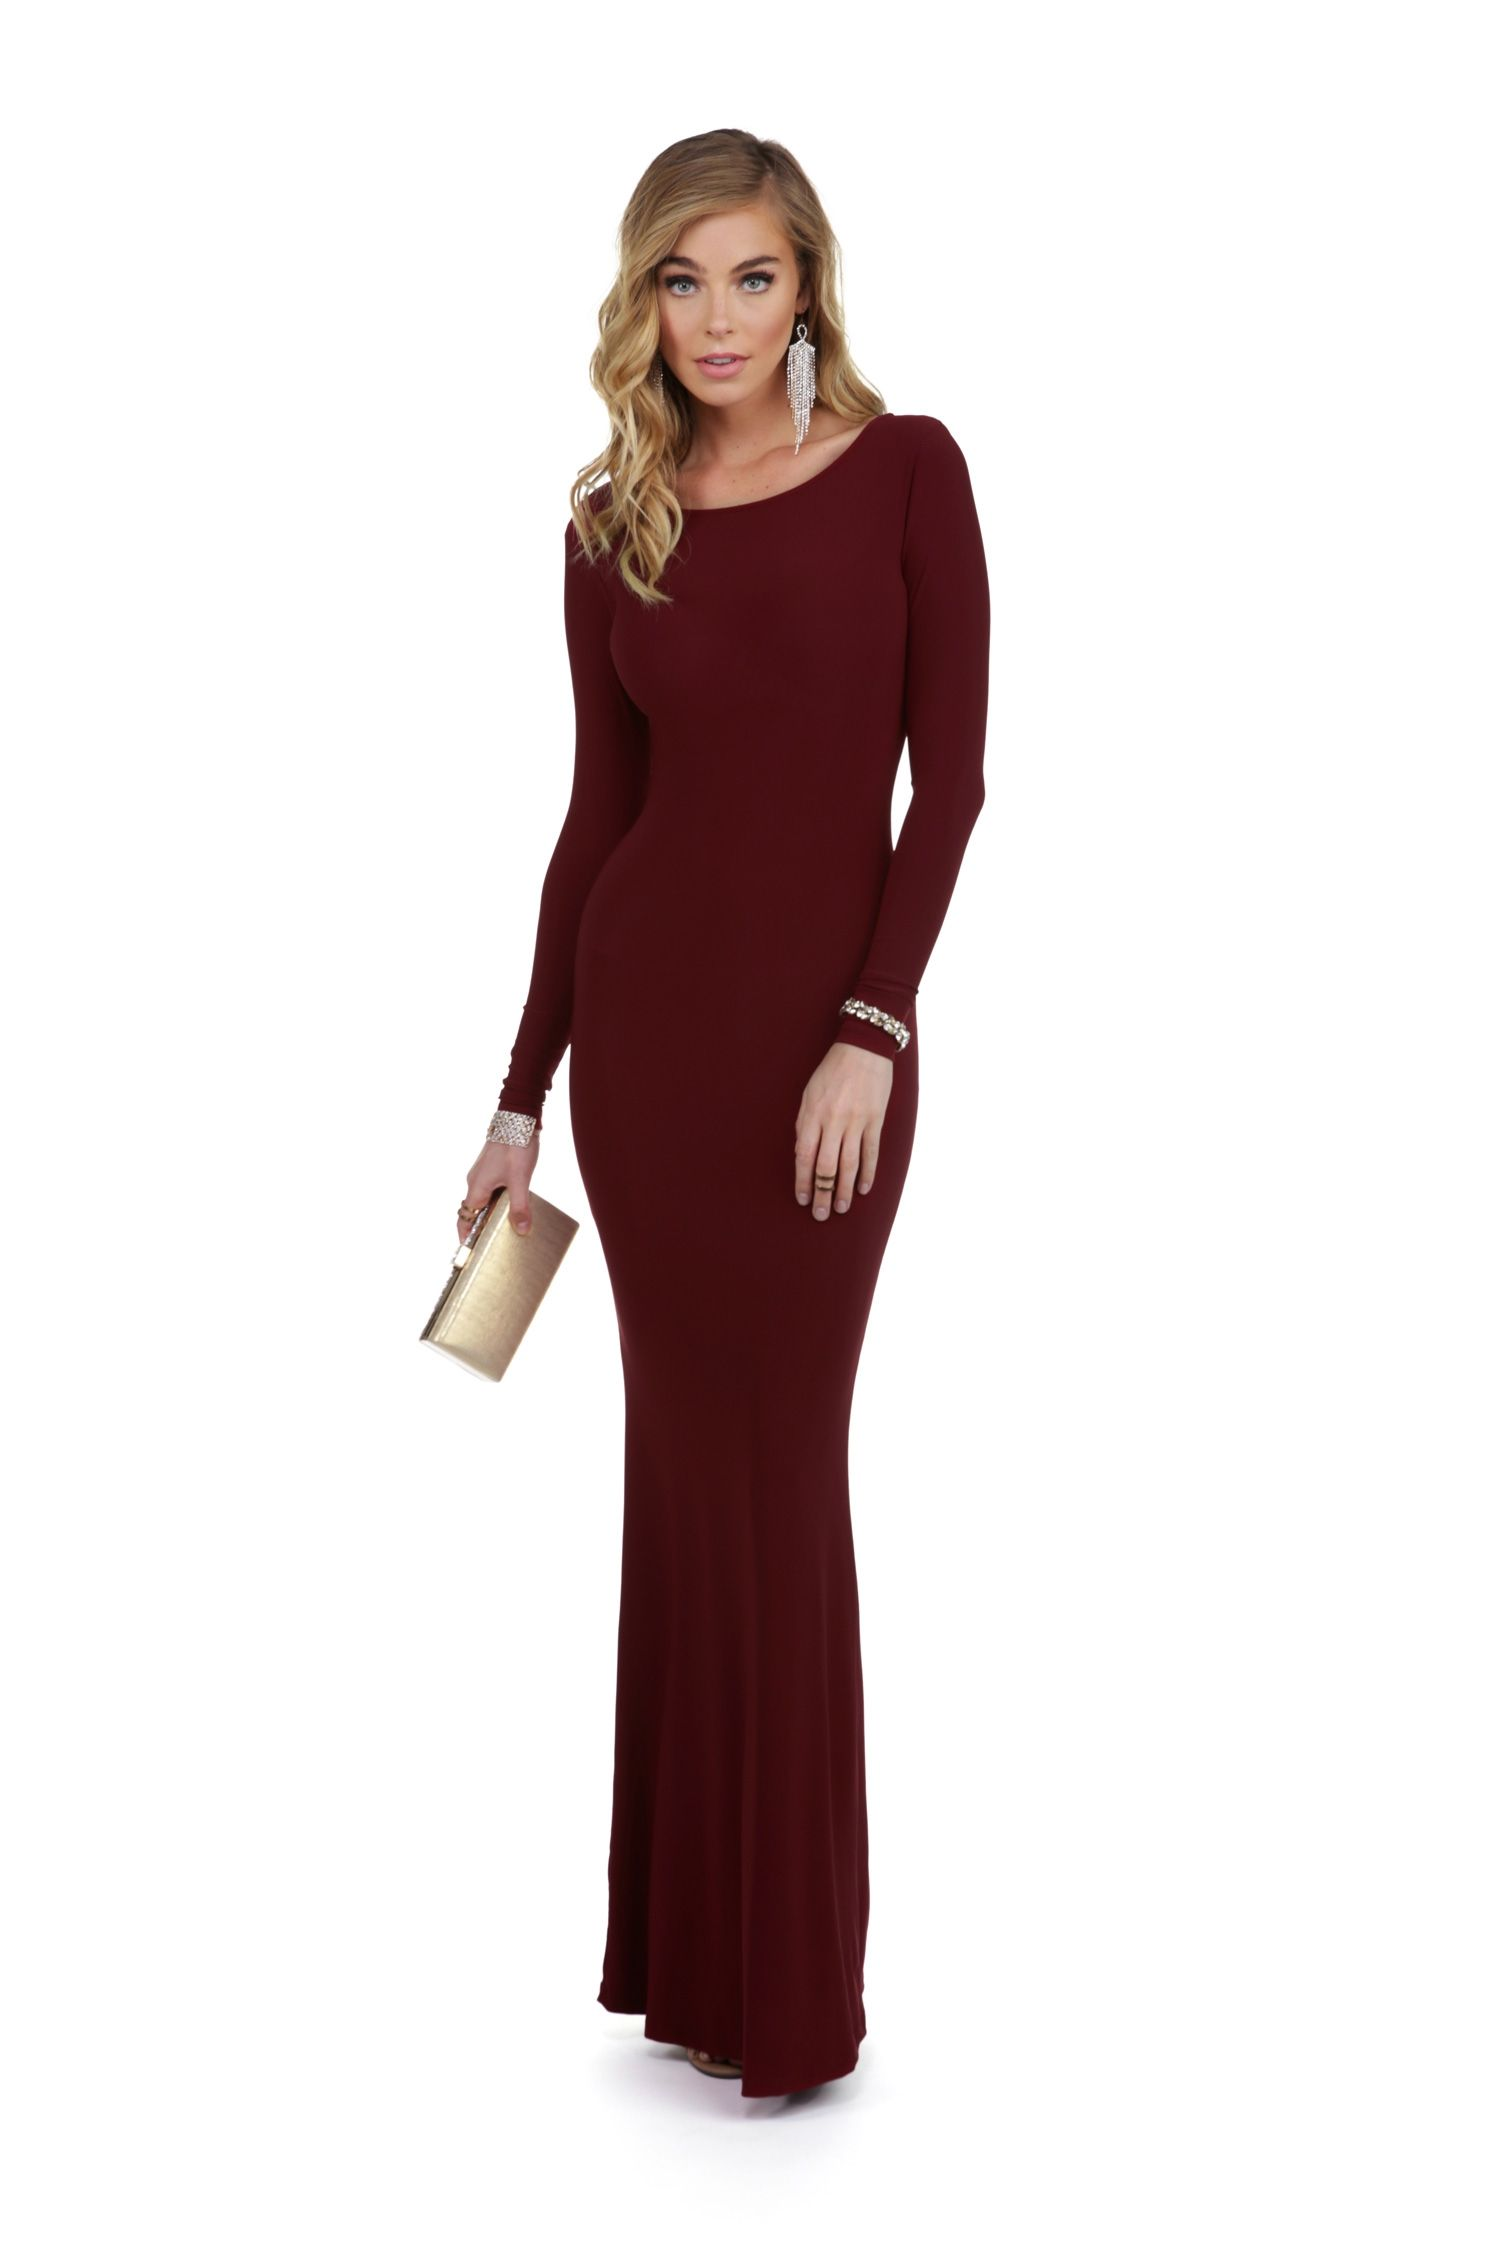 Final Sale Chanelle Burgundy Formal Dress Formal Prom And Winter